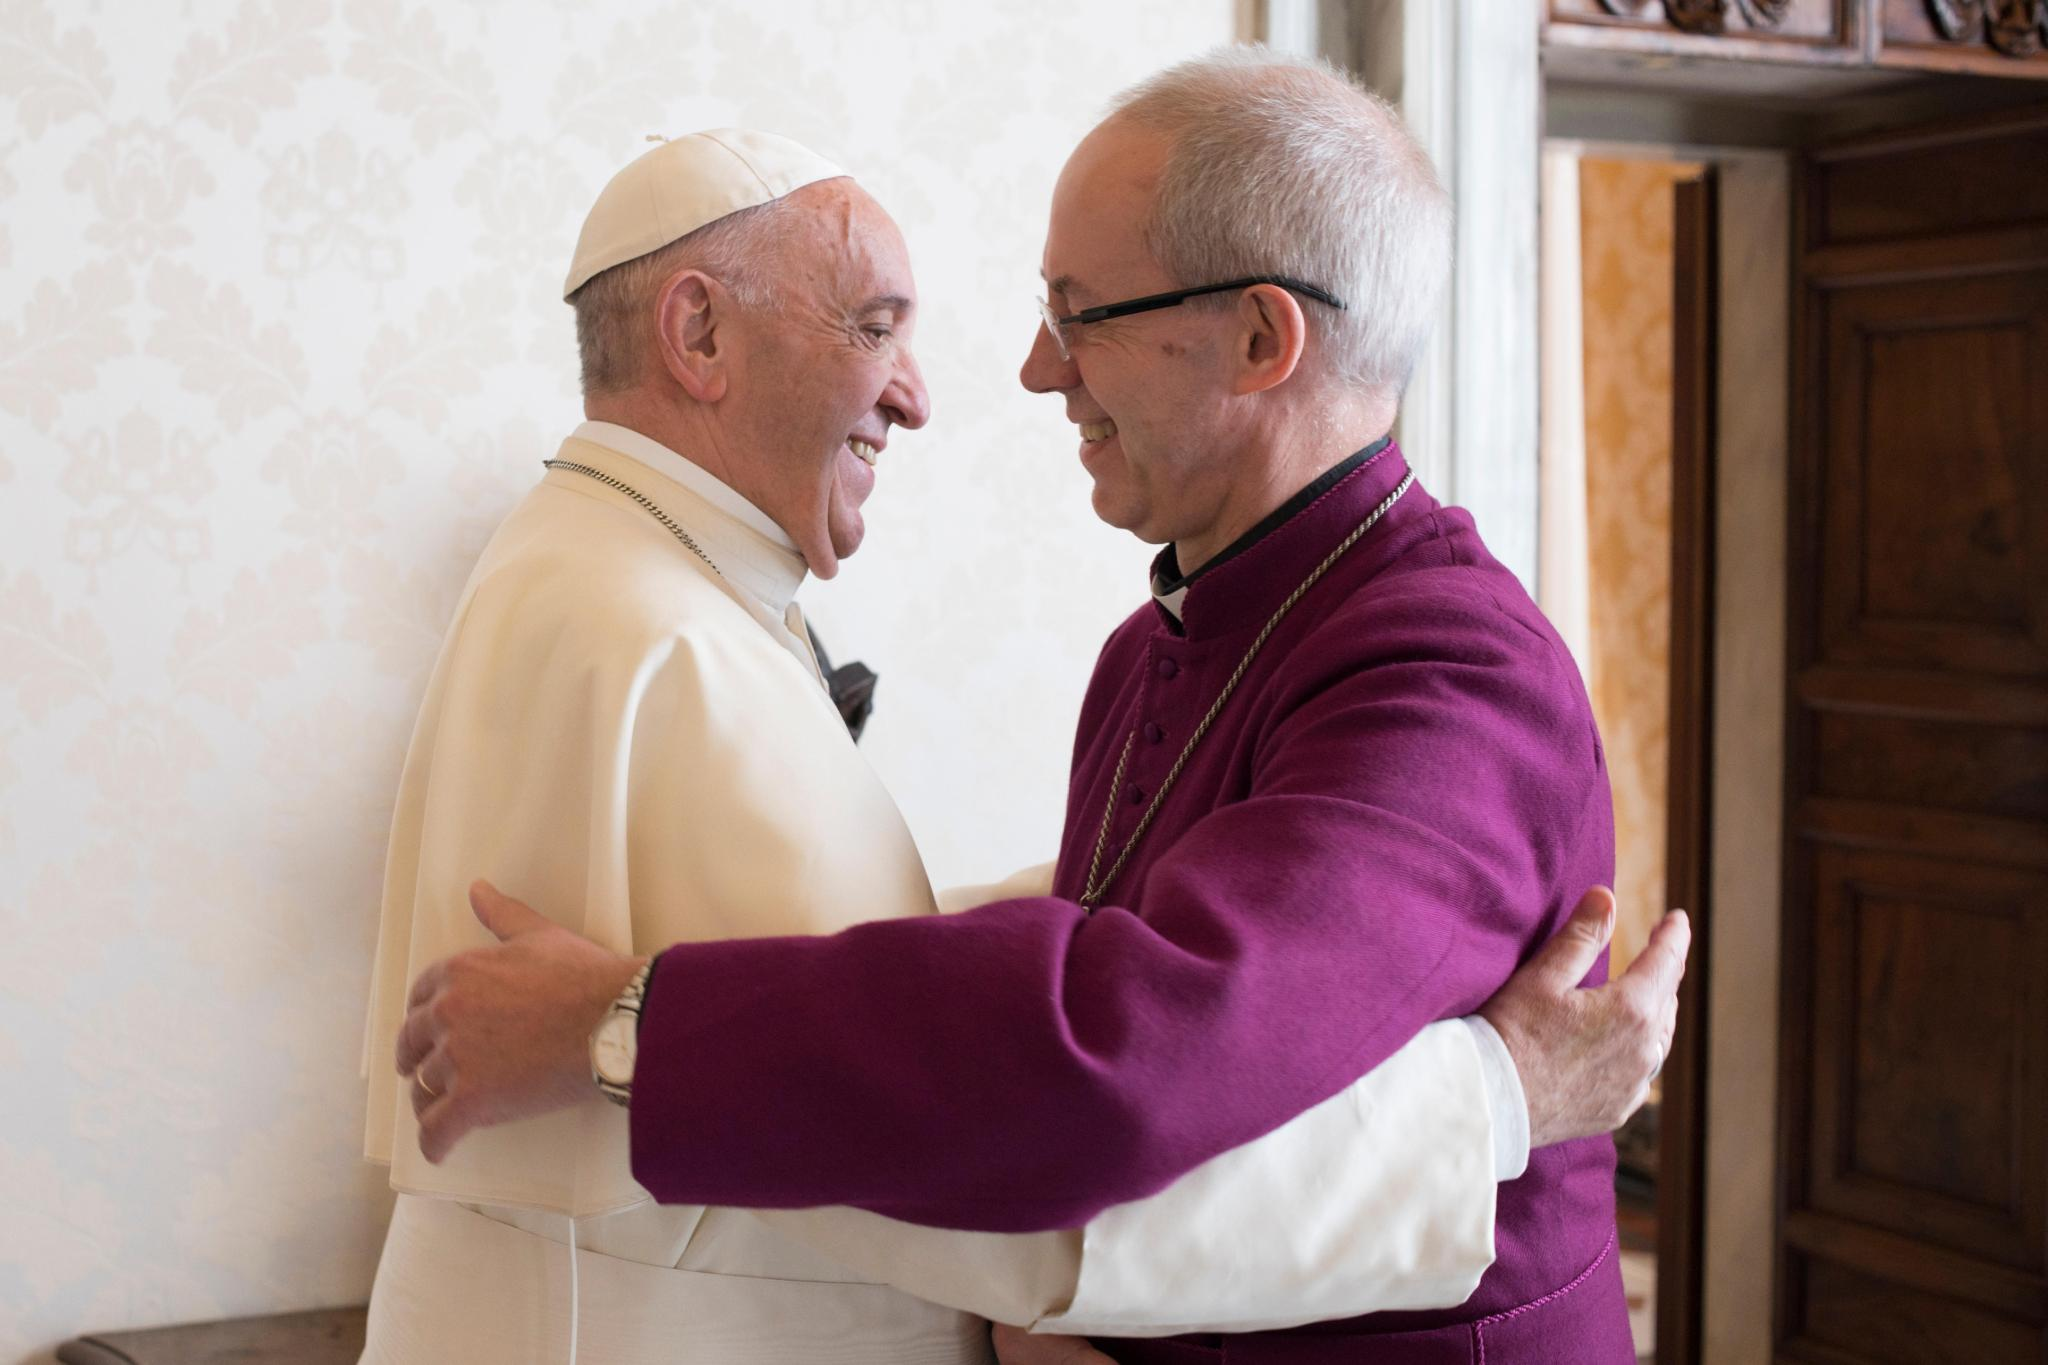 Pope Francis greets Archbishop of Canterbury Justin Welby during a private audience at the Vatican Oct. 27, 2017. Photo: CNS/L'Osservatore Romano